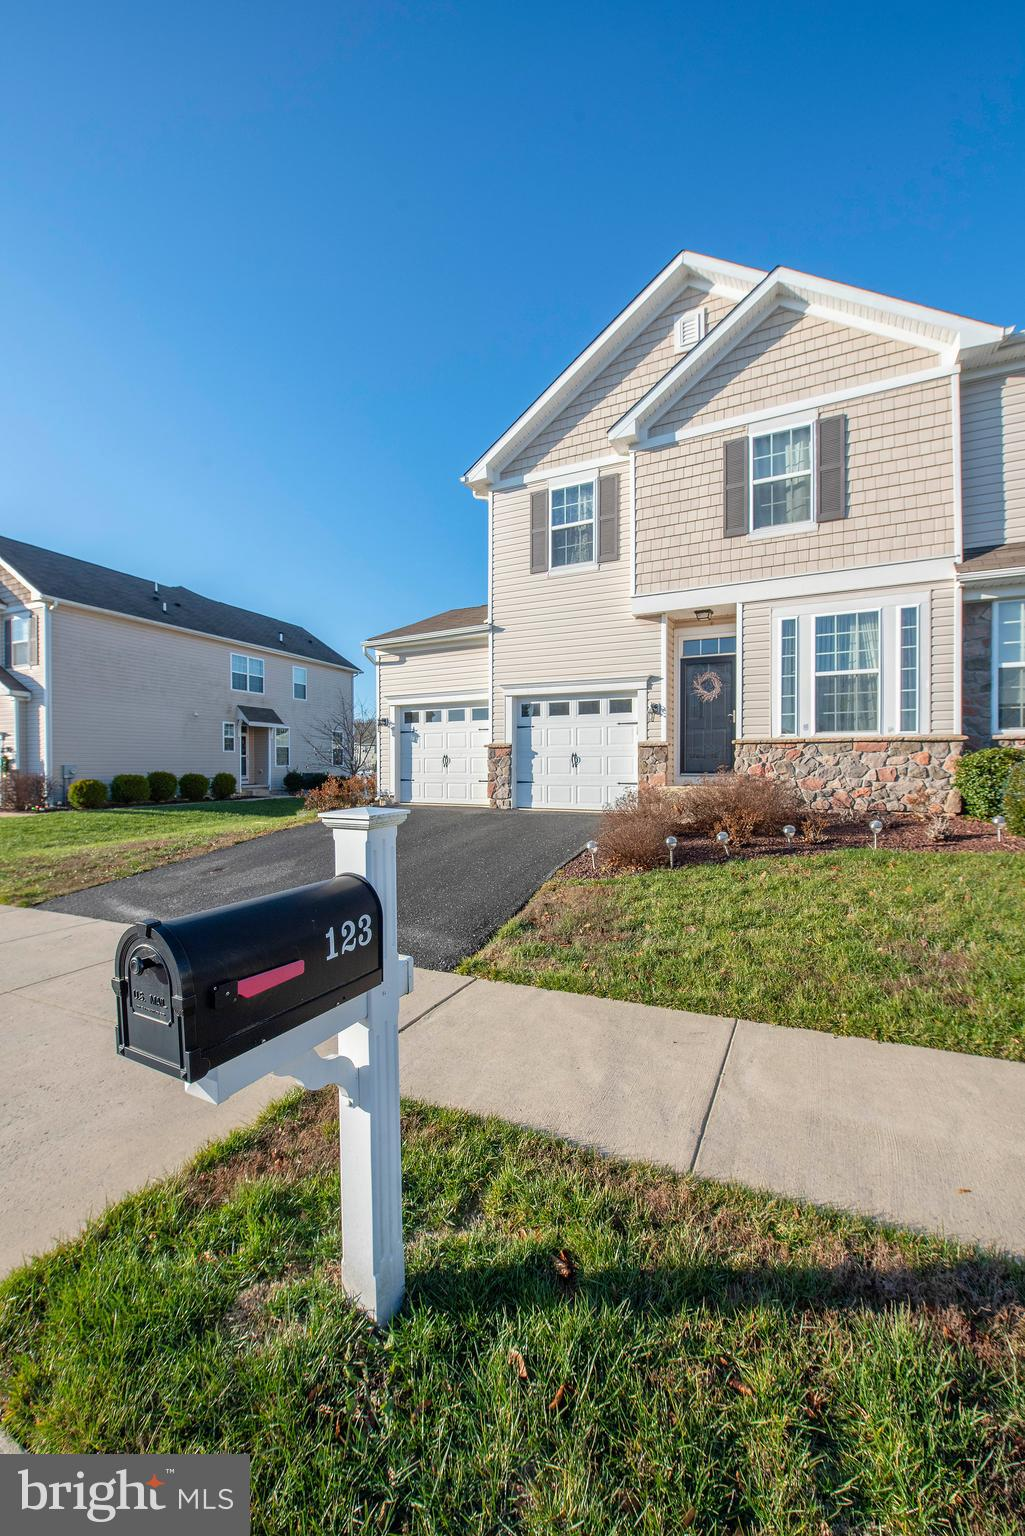 Come Check Out This Amazing Twin Home Located Along the C & D Canal in Canal View at Crossland. Upon Entering This Home You Will Be Greeted Into the Large Foyer/Sitting Area.  Pass by The Powder Room and Mud Room on Your Way to the Open and Inviting Kitchen Complete with Granite & Stainless Steel Appliances, Living and Dining Area with Gleaming Hardwood Floors, All Located at the Rear of the Home.  Enjoy Spending Quality Time on the Patio Just Out the Back Door. This Layout Includes a Spacious Master with Large Sitting Room, Master Bath Complete with Walk In Closet and Two Additional Bedrooms on the Second Floor. You'll Find the Laundry Area on the 2nd Floor Which Includes the Washer & Dryer. Make Your Way Down to the Finished Basement with Recessed Lighting, a Full Bathroom and a Separate Room That Can be Used as a 4th Bedroom or Office! This Incredible Community is Close to Shopping Areas, Recreational Facilities and Hospitals. You can Enjoy the Walking Trails Along the Community Close to the Canal During Your Spare Time.  Pool and Recreation Center at  will be Available  for use  at The Crosslands at Canal this Summer!  Conveniently Located Near Routes 1, I-95, 13, 301  & 896!  The Entire Home Has Been Professionally Cleaned and Ready for It's New Owners!